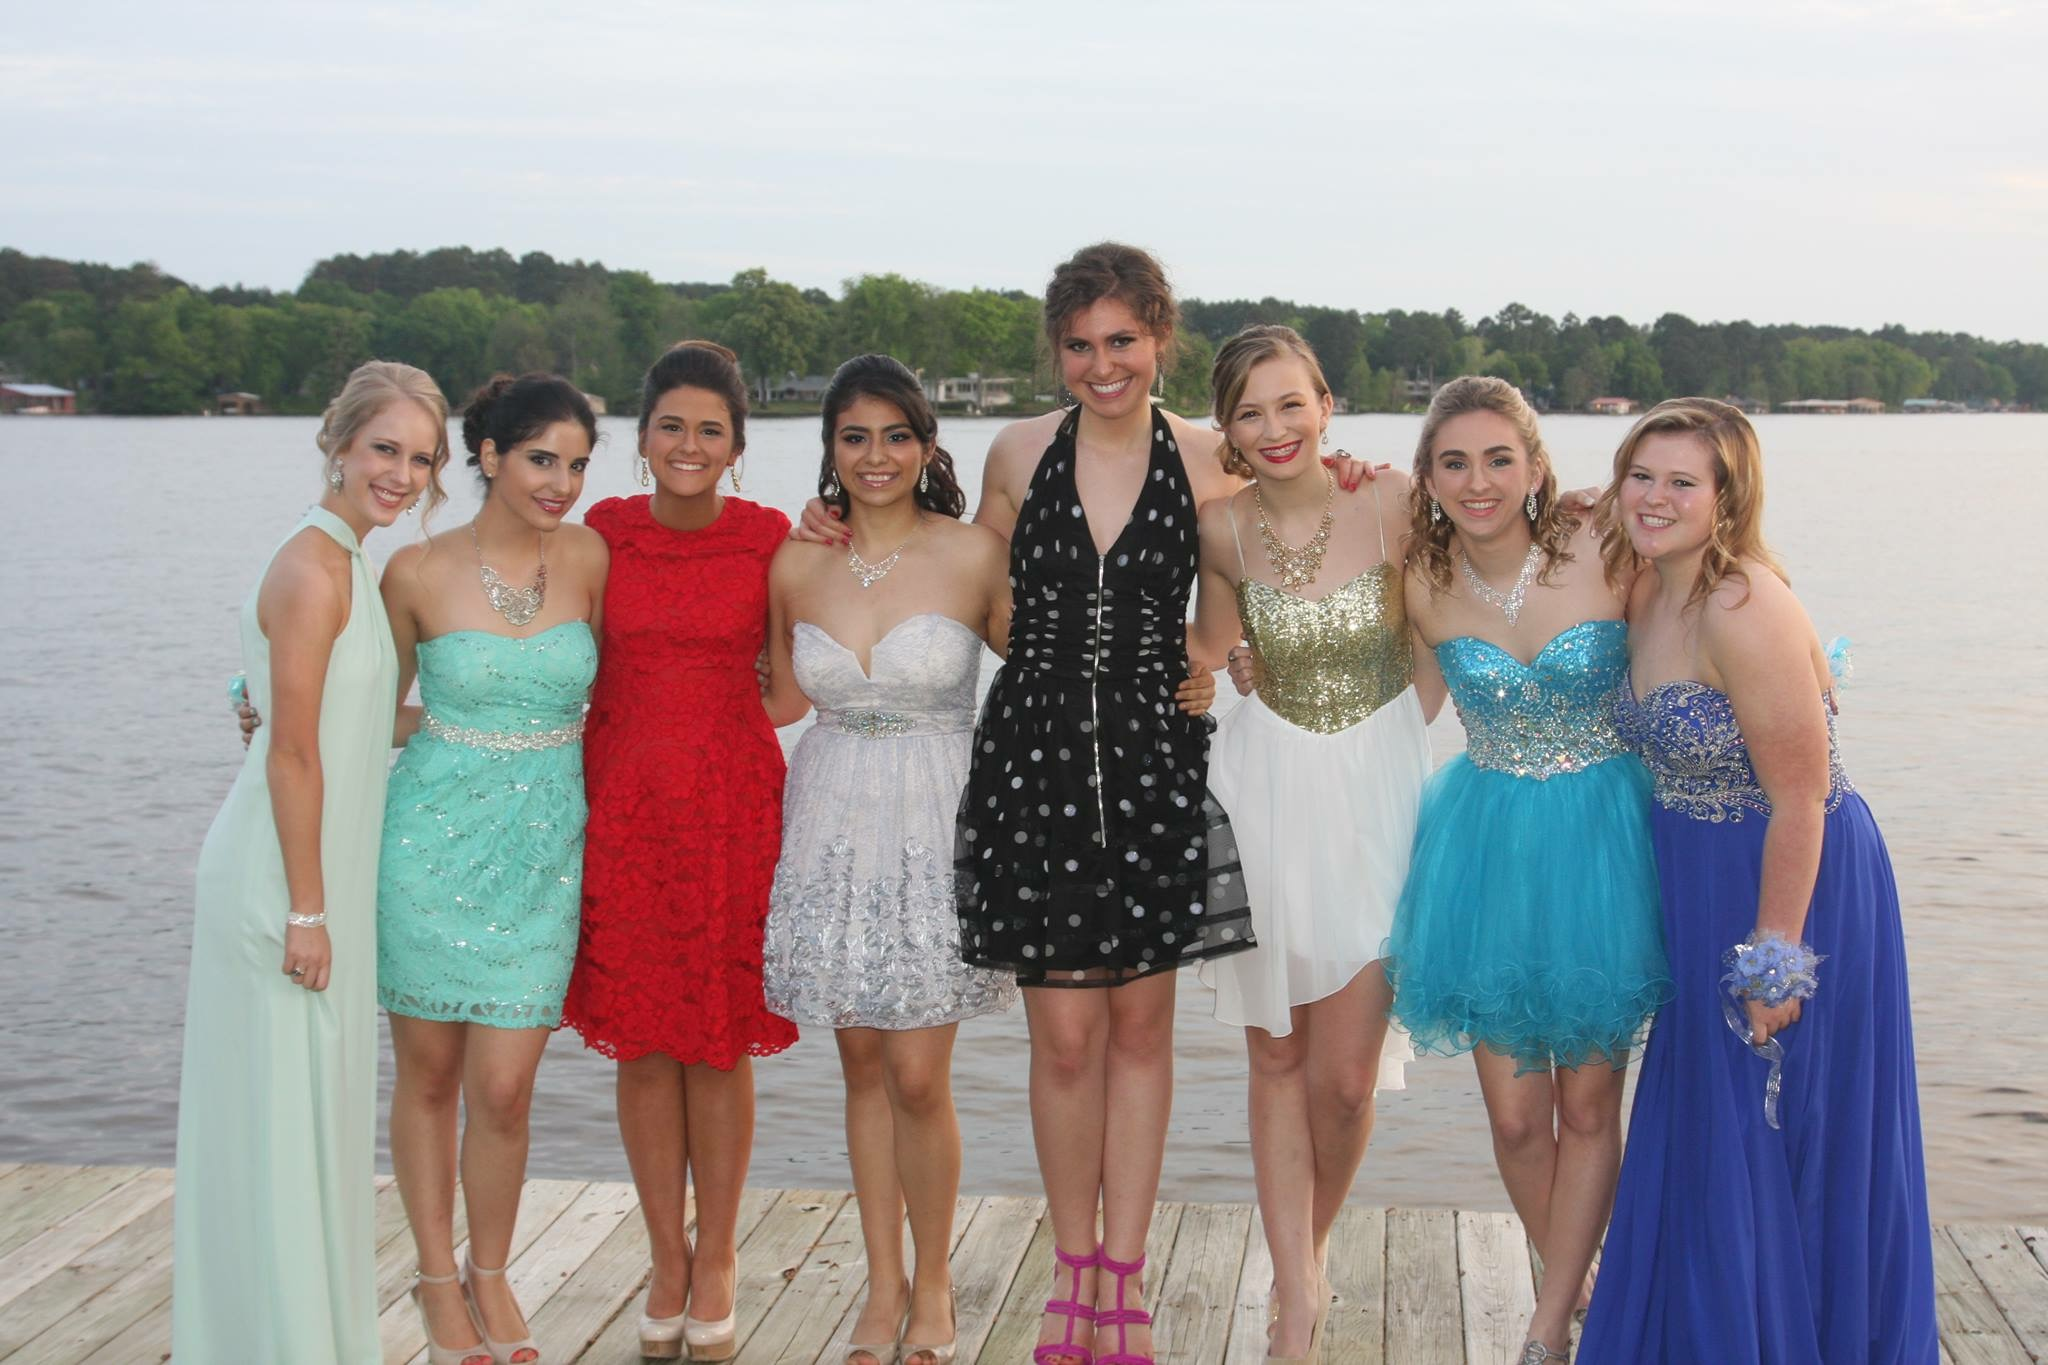 Pre-prom photo with my girls in Longview